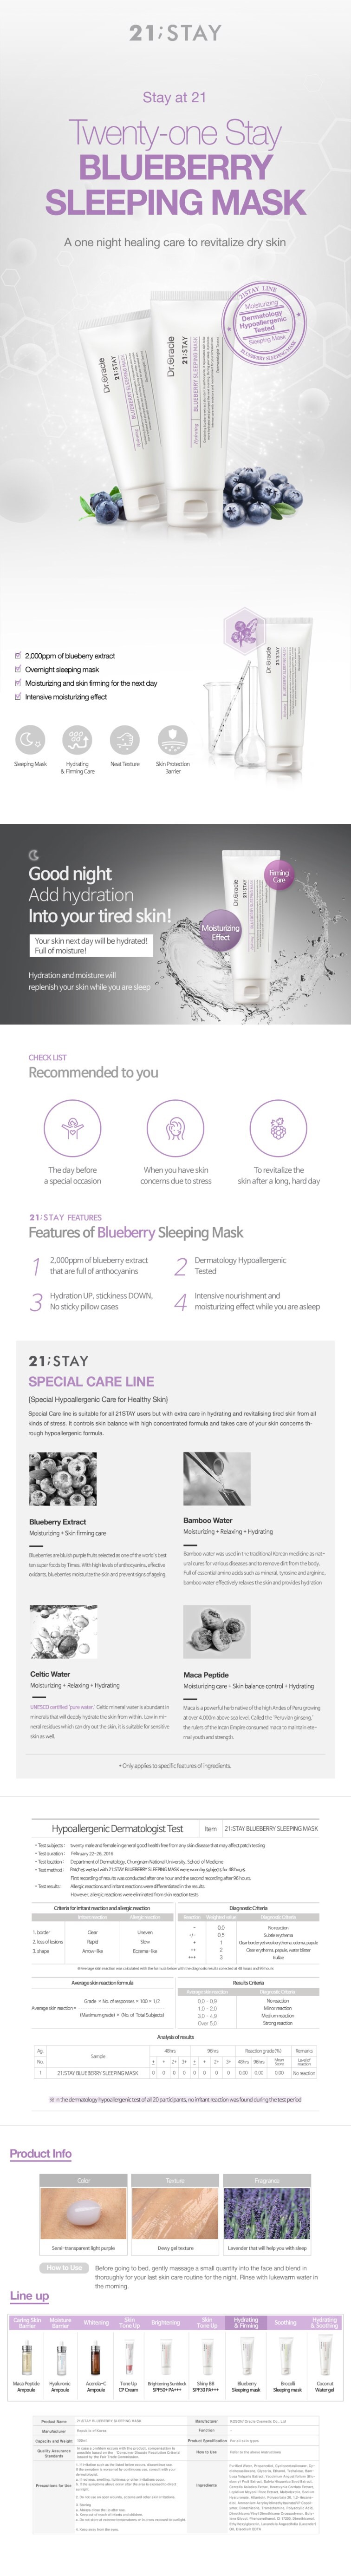 Blueberry Sleeping Mask